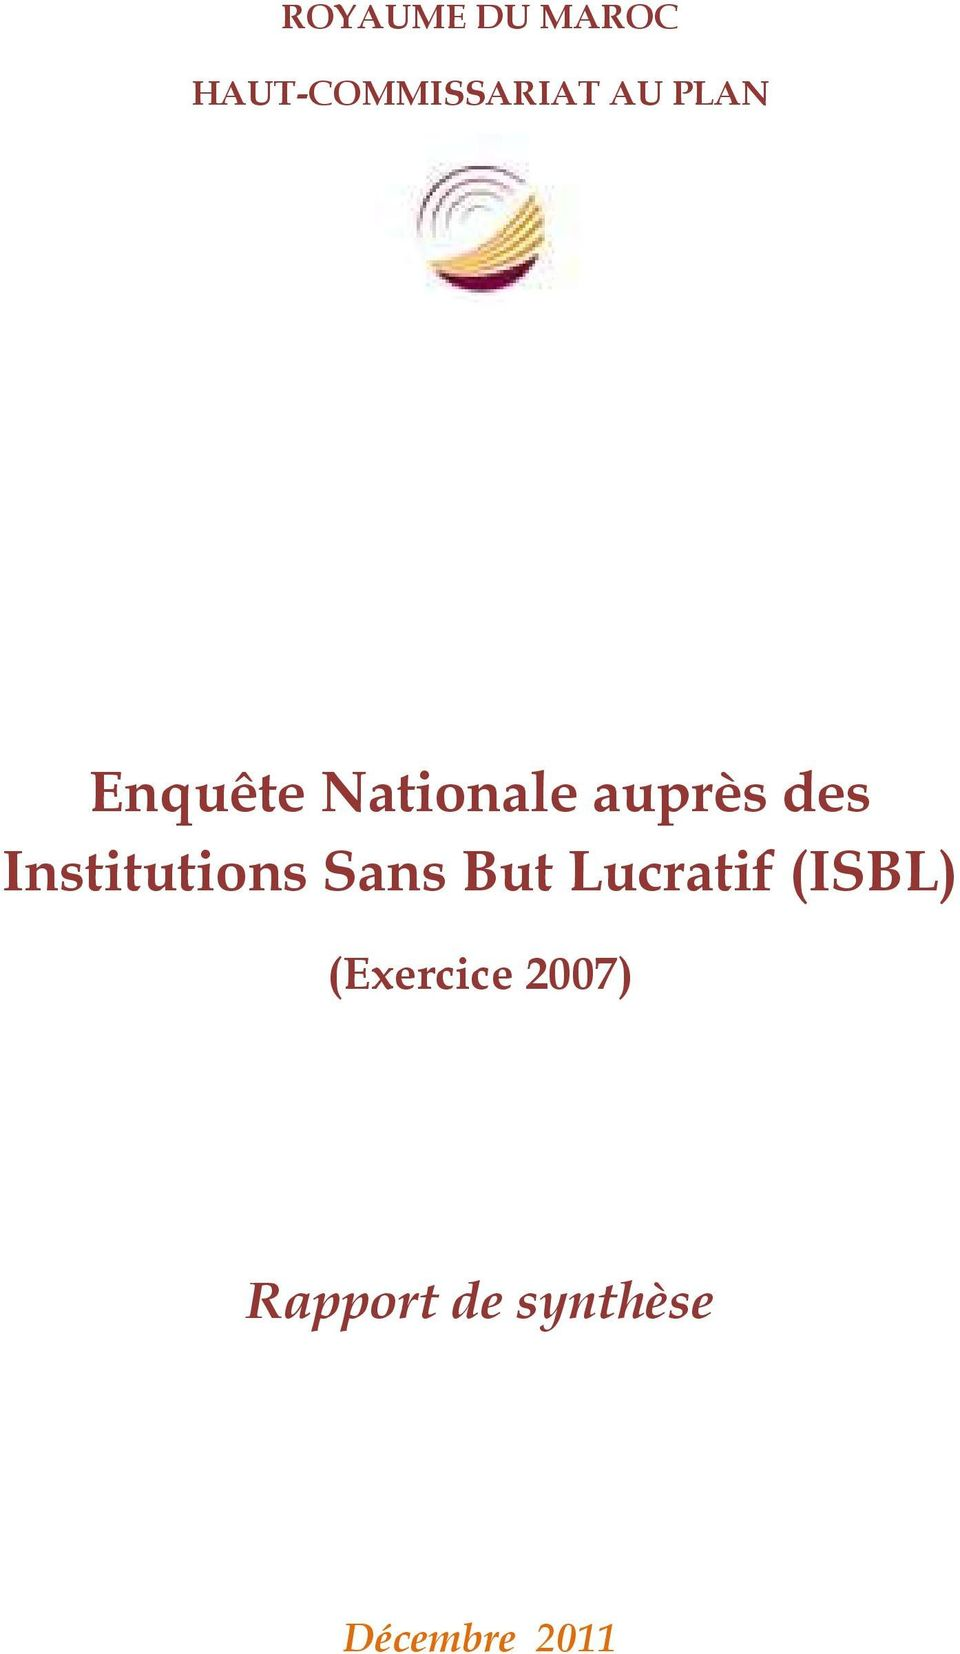 Institutions Sans But Lucratif (ISBL)